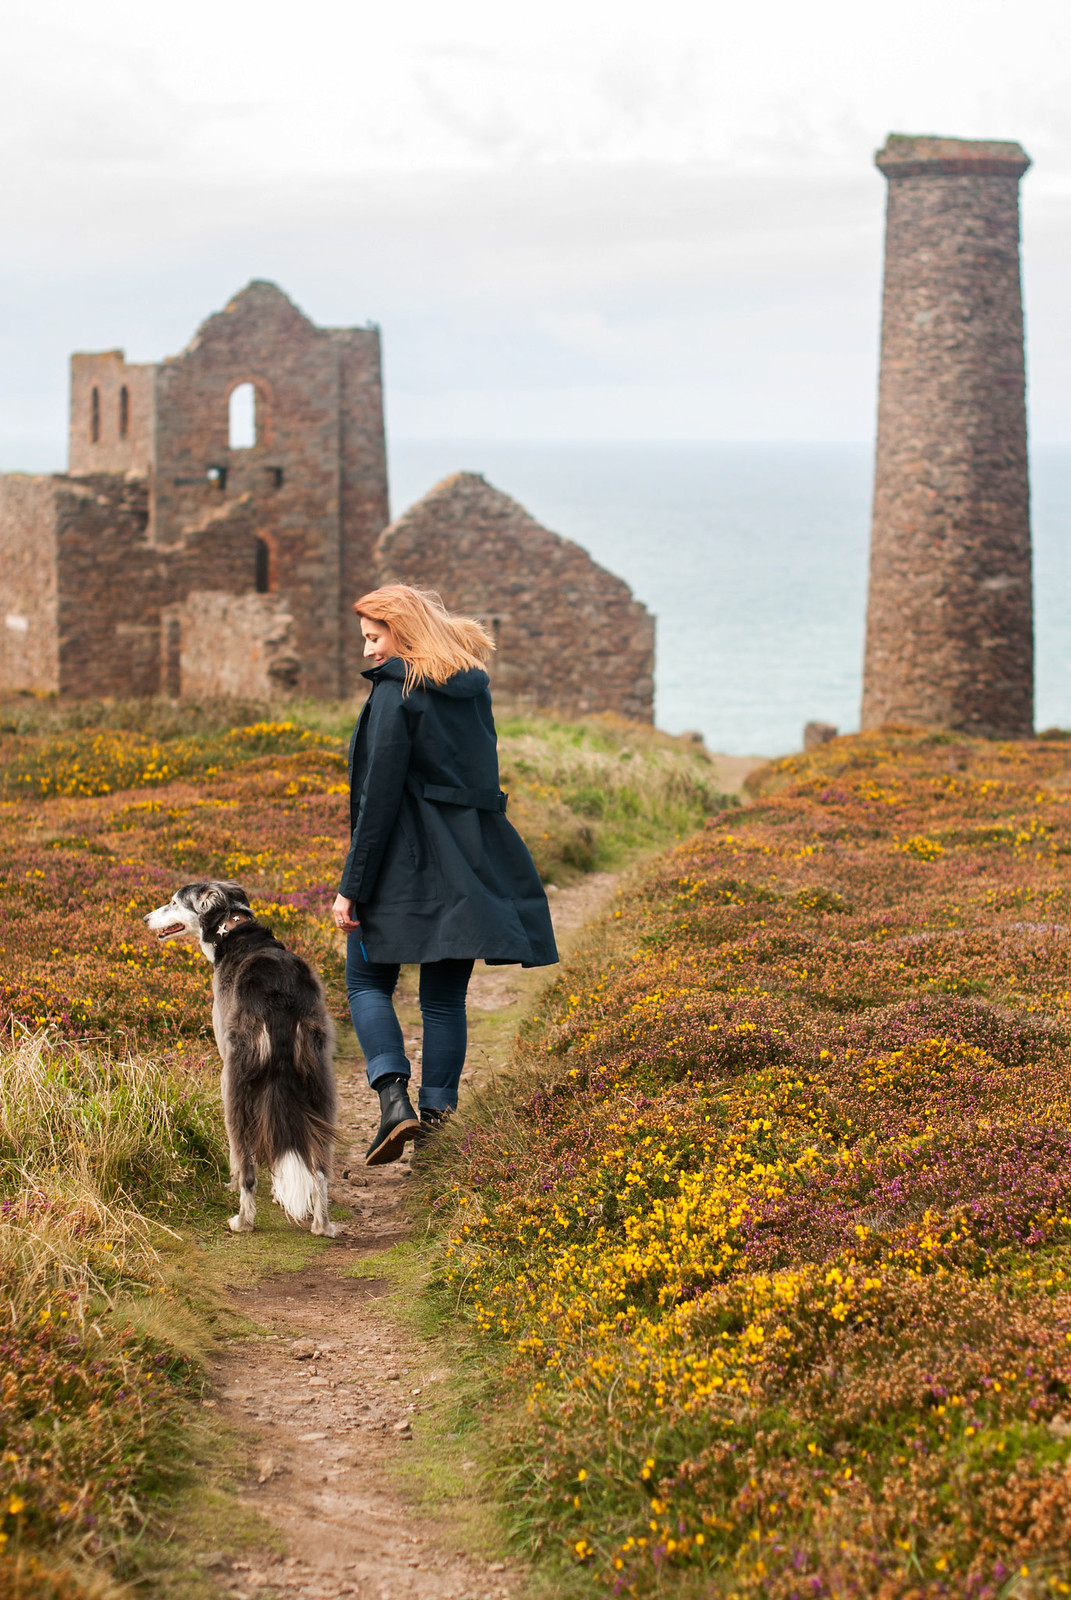 Stylish dressing for a rainy day - wearing AW17 Seasalt Cornwall in St Agnes, Cornwall: Longline navy raincoat \ grey Fair Isle sweater jumper \ blue corduroy trousers \ navy Chelsea boots | Not Dressed As Lamb, over 40 style